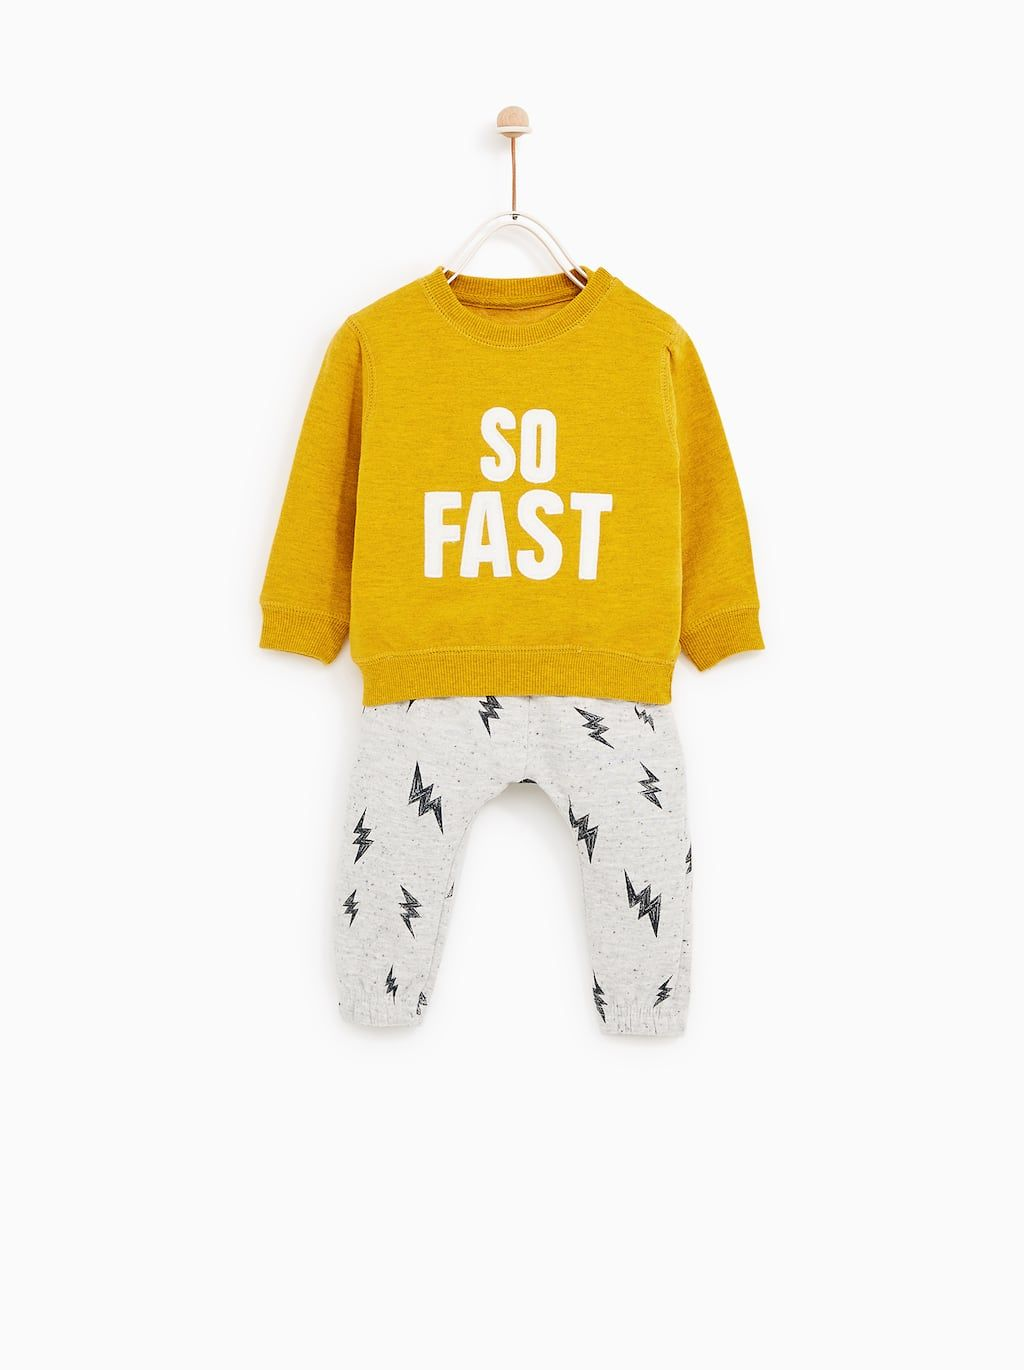 86761ef7b36 SO FAST' TRACKSUIT from Zara baby boy to toddler sizes | 童装颜色 ...